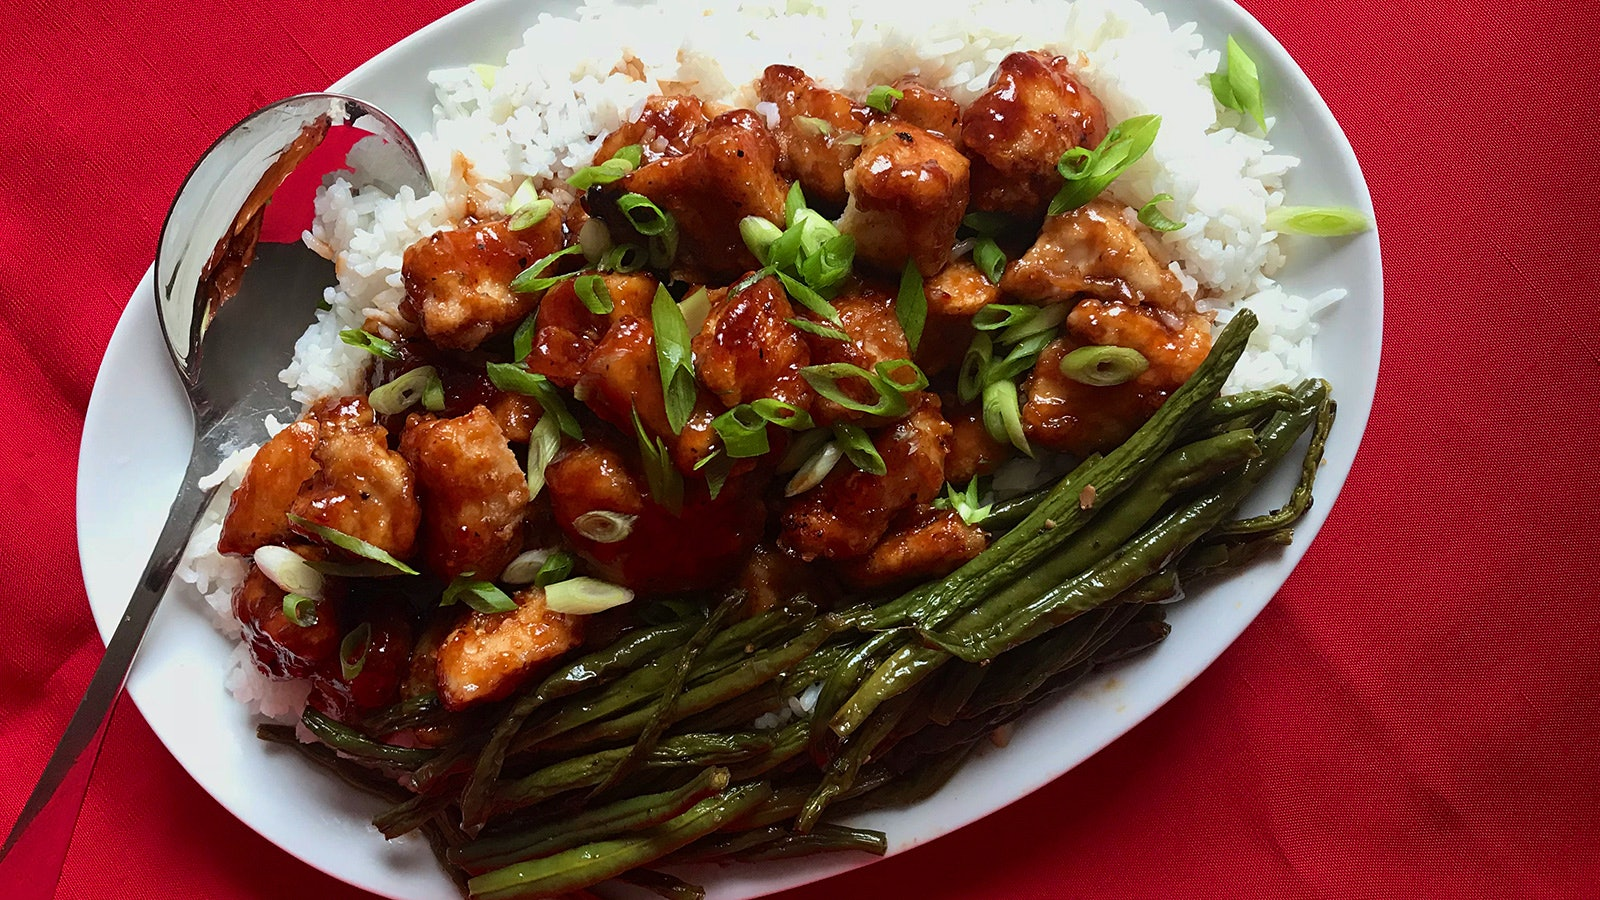 Plate of crispy chicken in a sweet-sour-spicy sauce, with white rice and roasted green beans